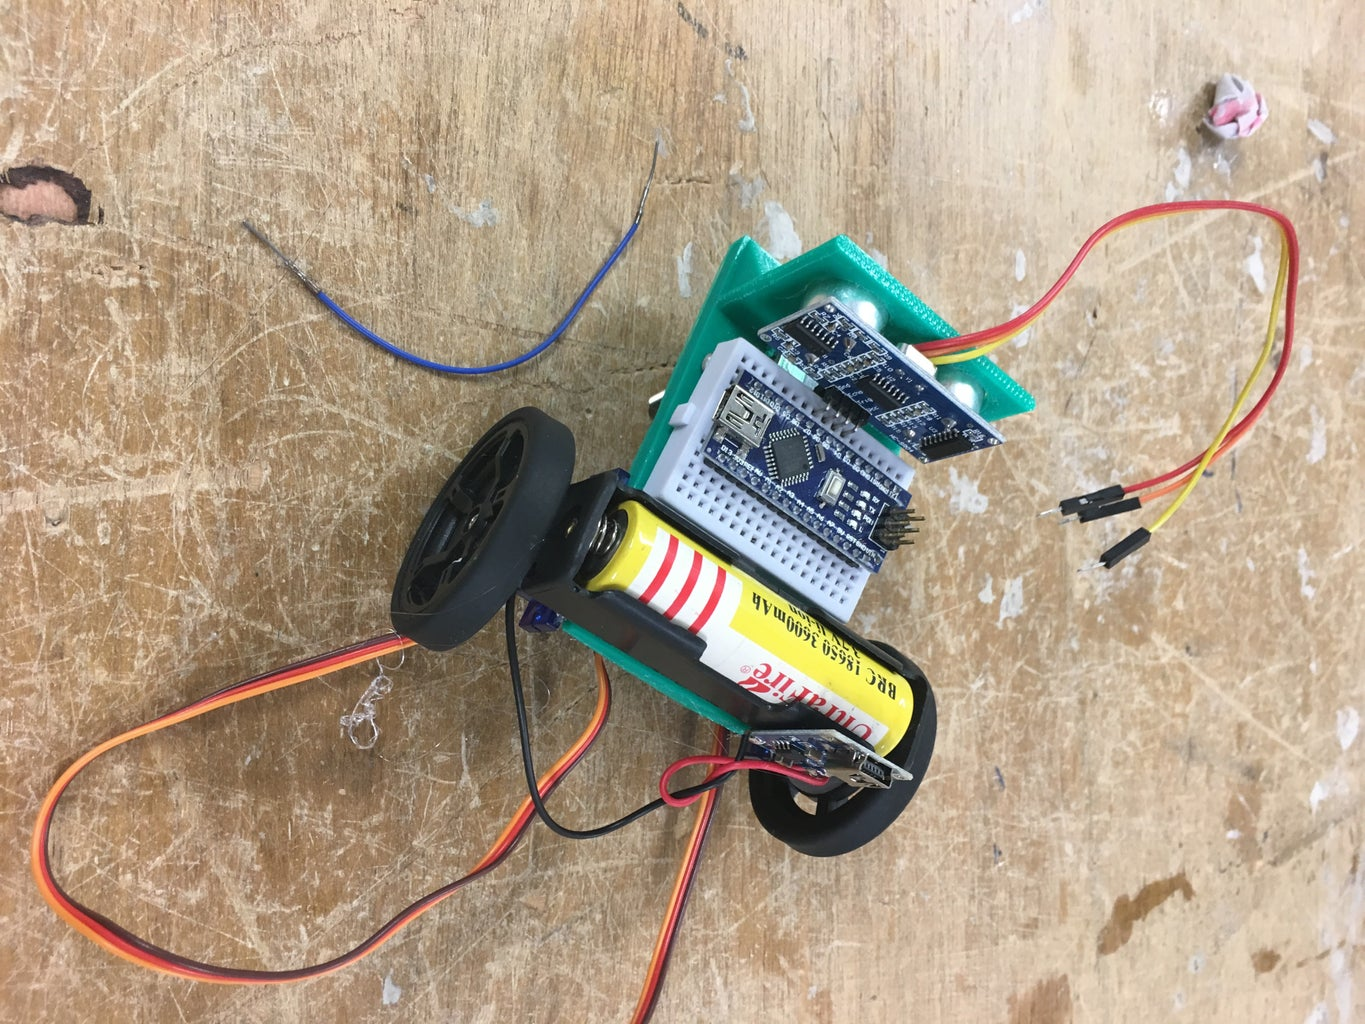 Creating the Battery Management Circuit and Adding It to the Chasis